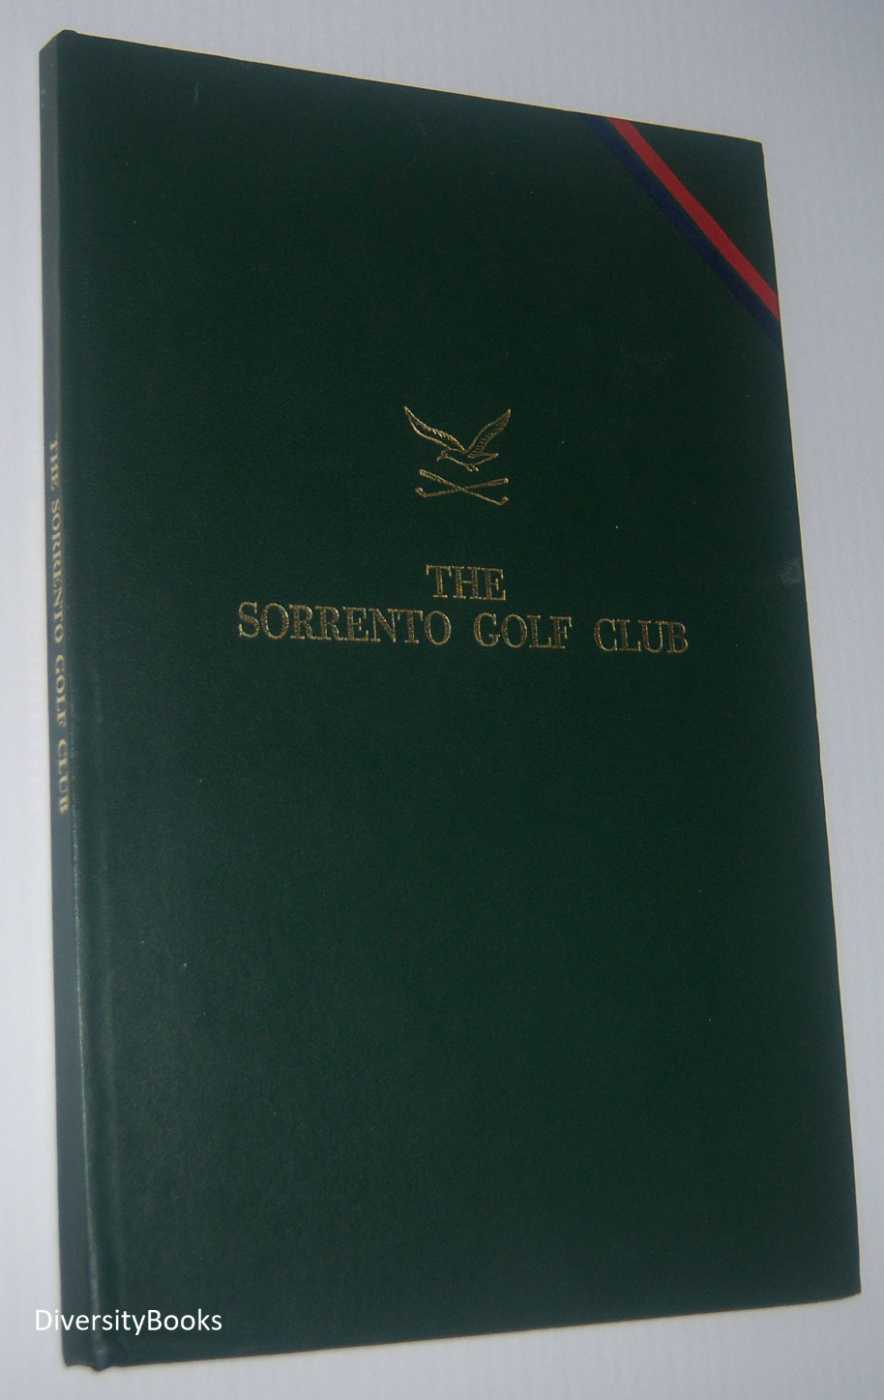 Image for THE HISTORY OF THE SORRENTO GOLF CUB